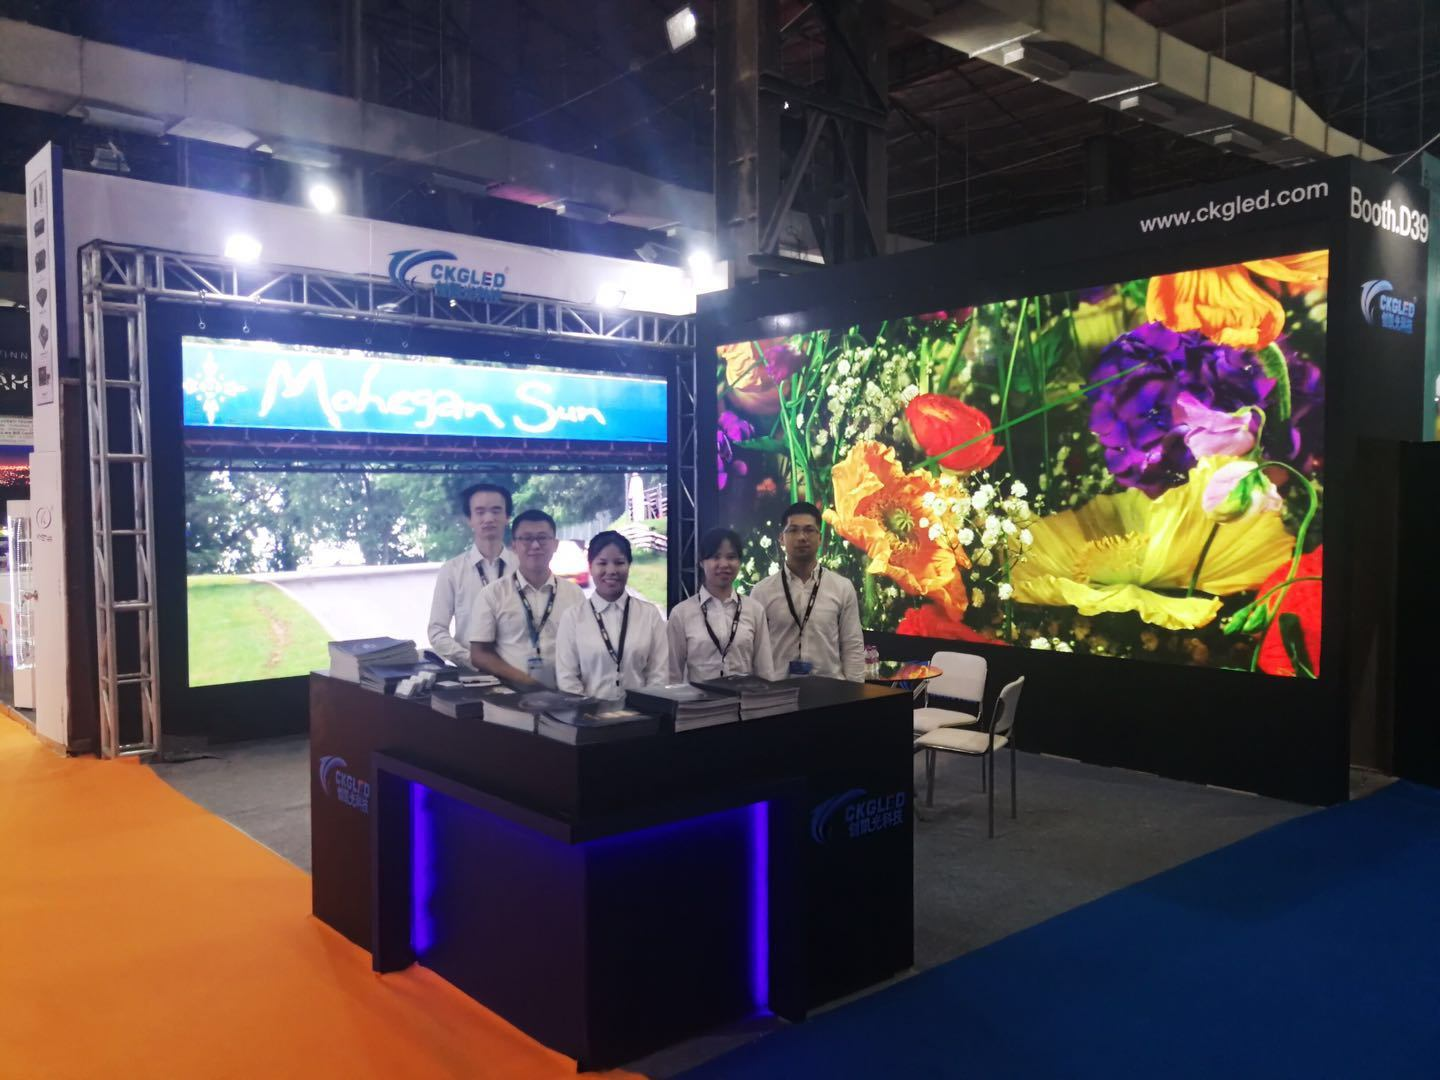 Ckgled Indoor High Definition P2.5 Full Color LED Display Panel/LED Video Wall